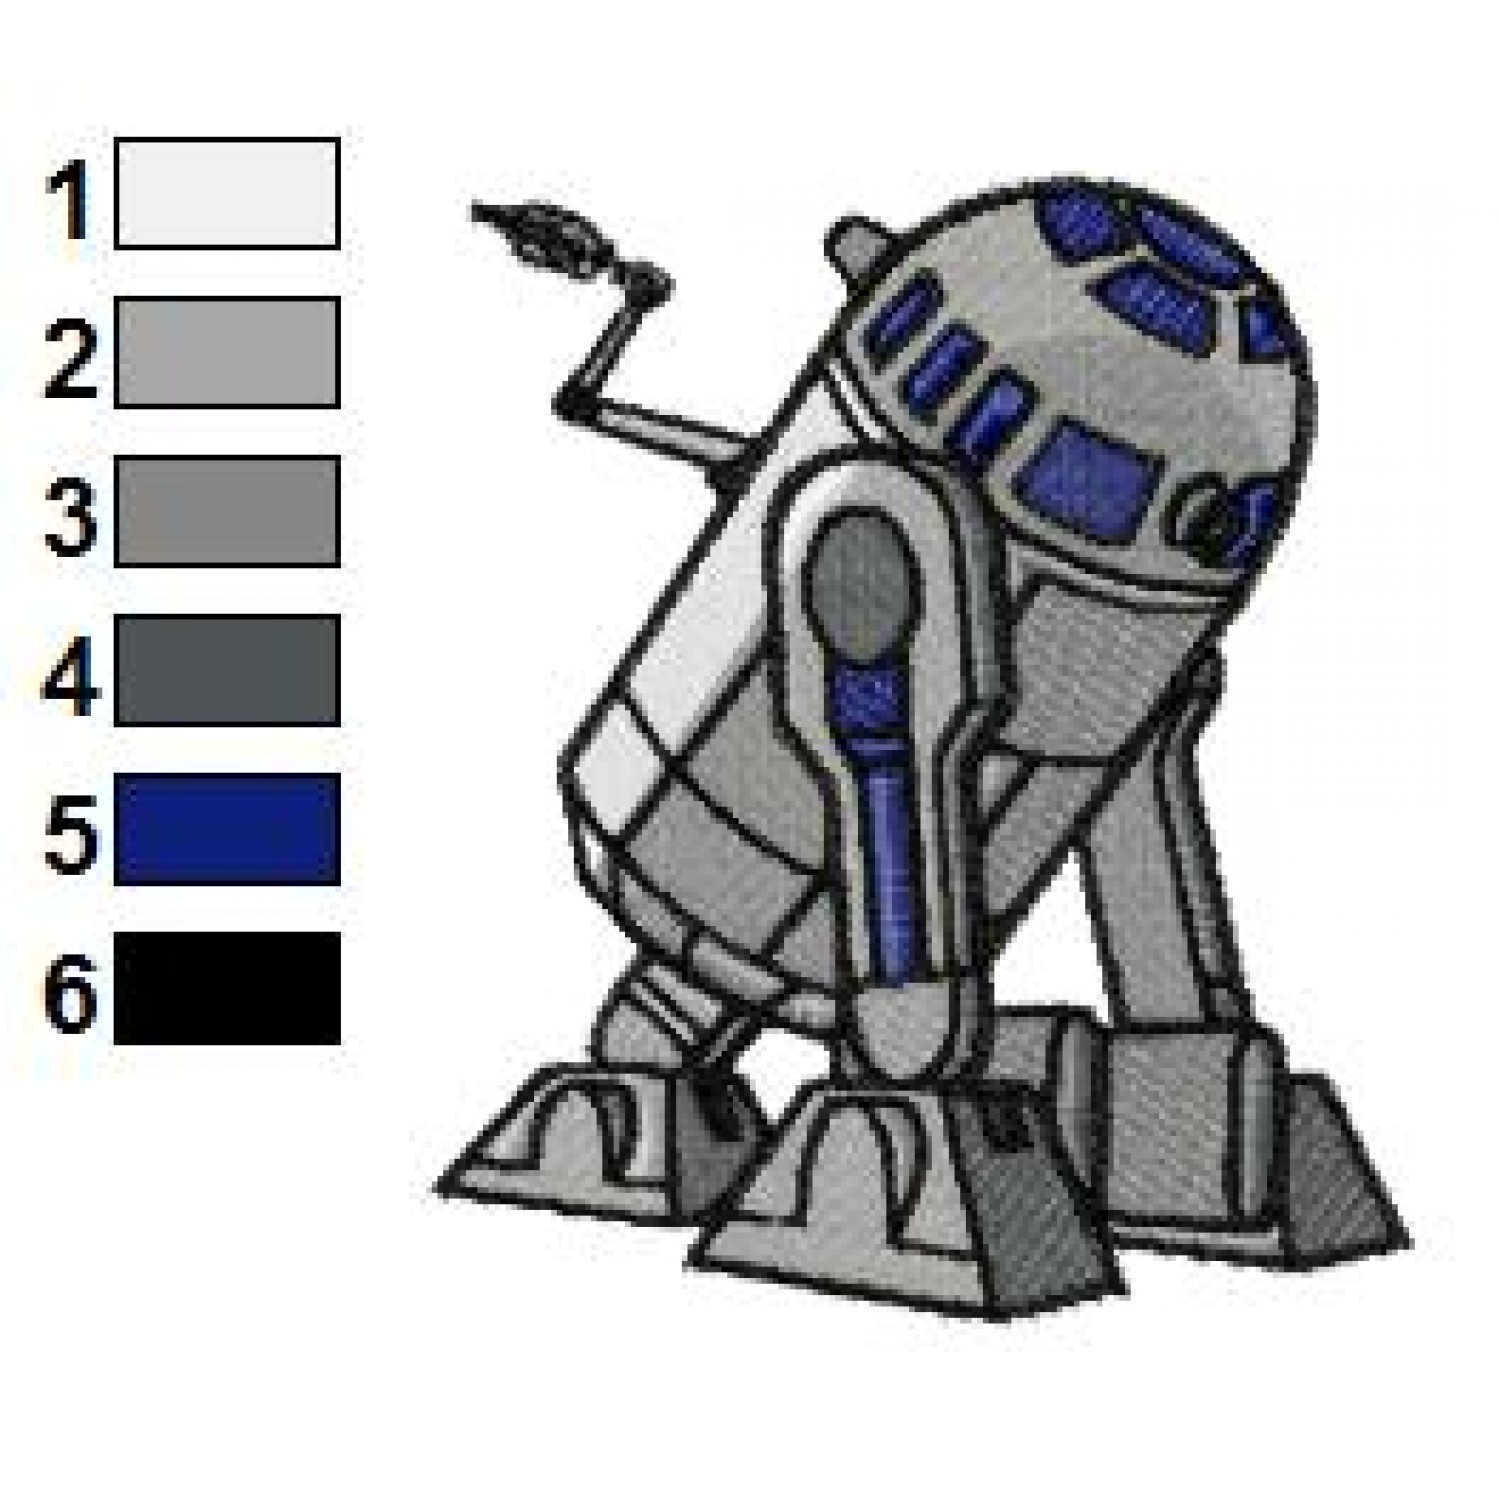 CWR2 Star Wars Embroidery Design